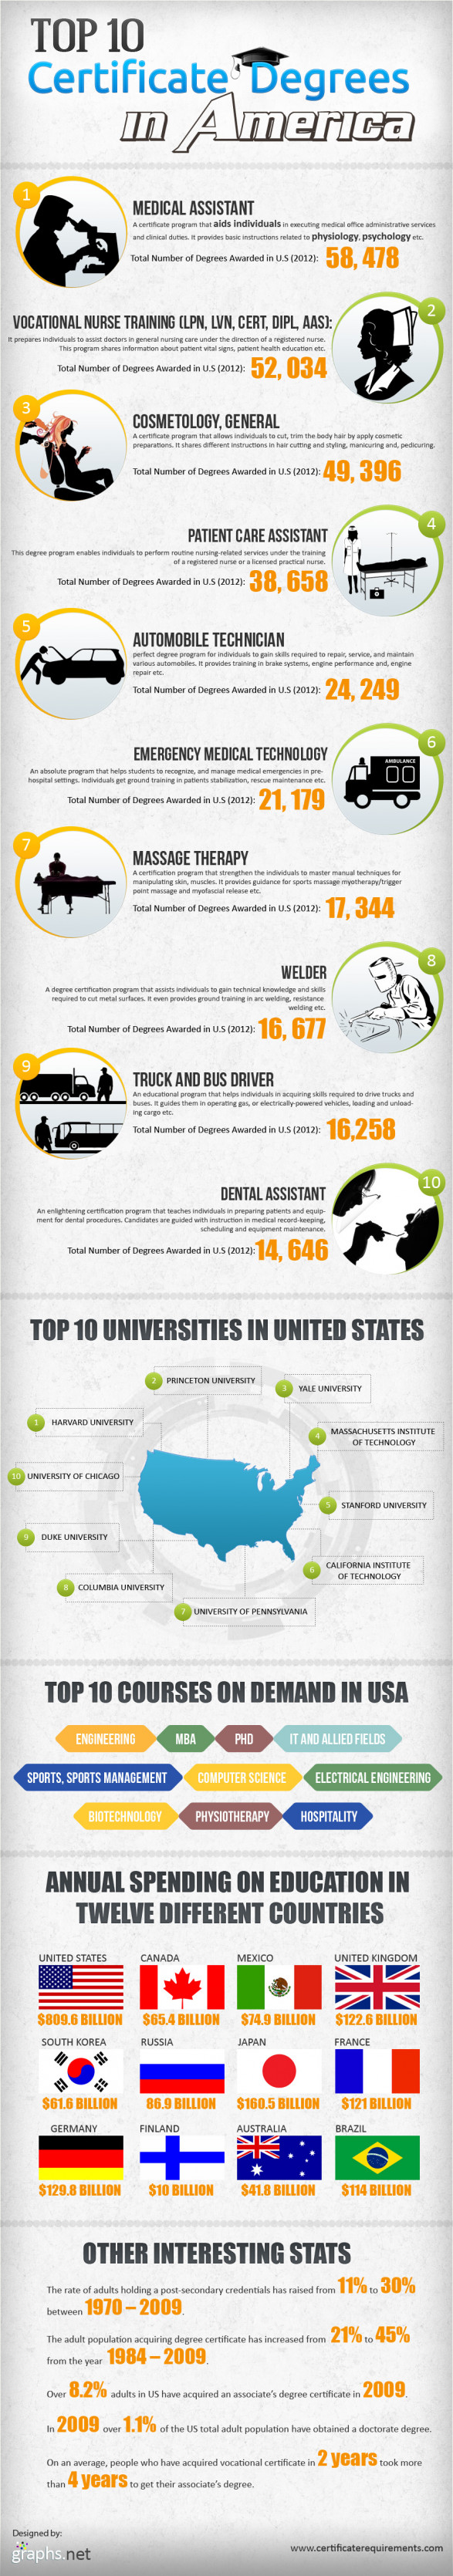 Certificate Degrees: The Top 10 In America [INFOGRAPHIC]